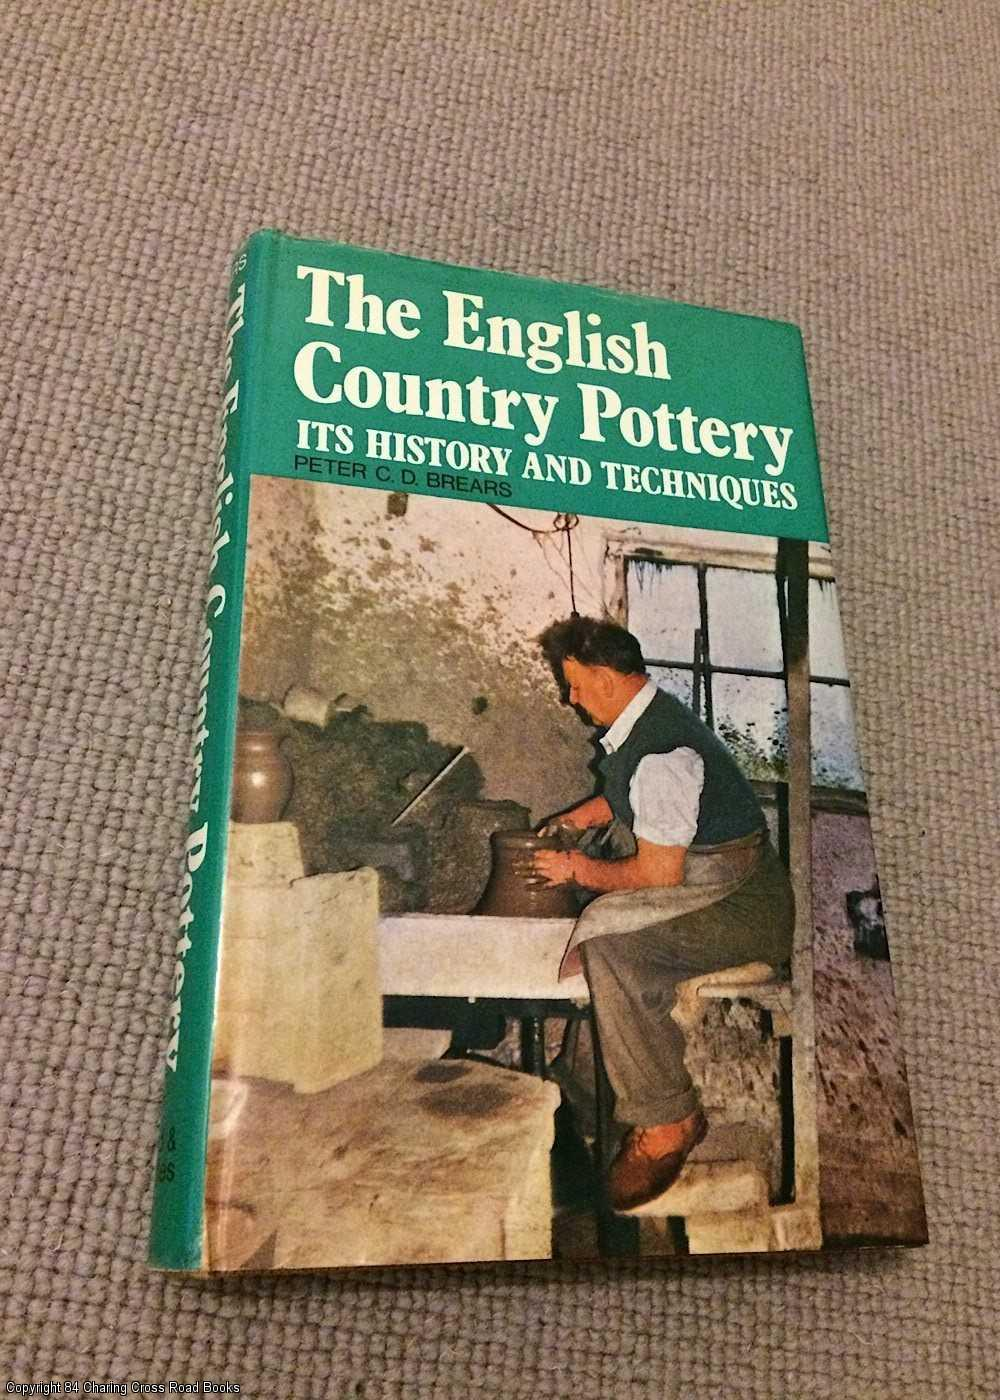 BREARS, PETER C. D. - English Country Pottery: Its History and Techniques